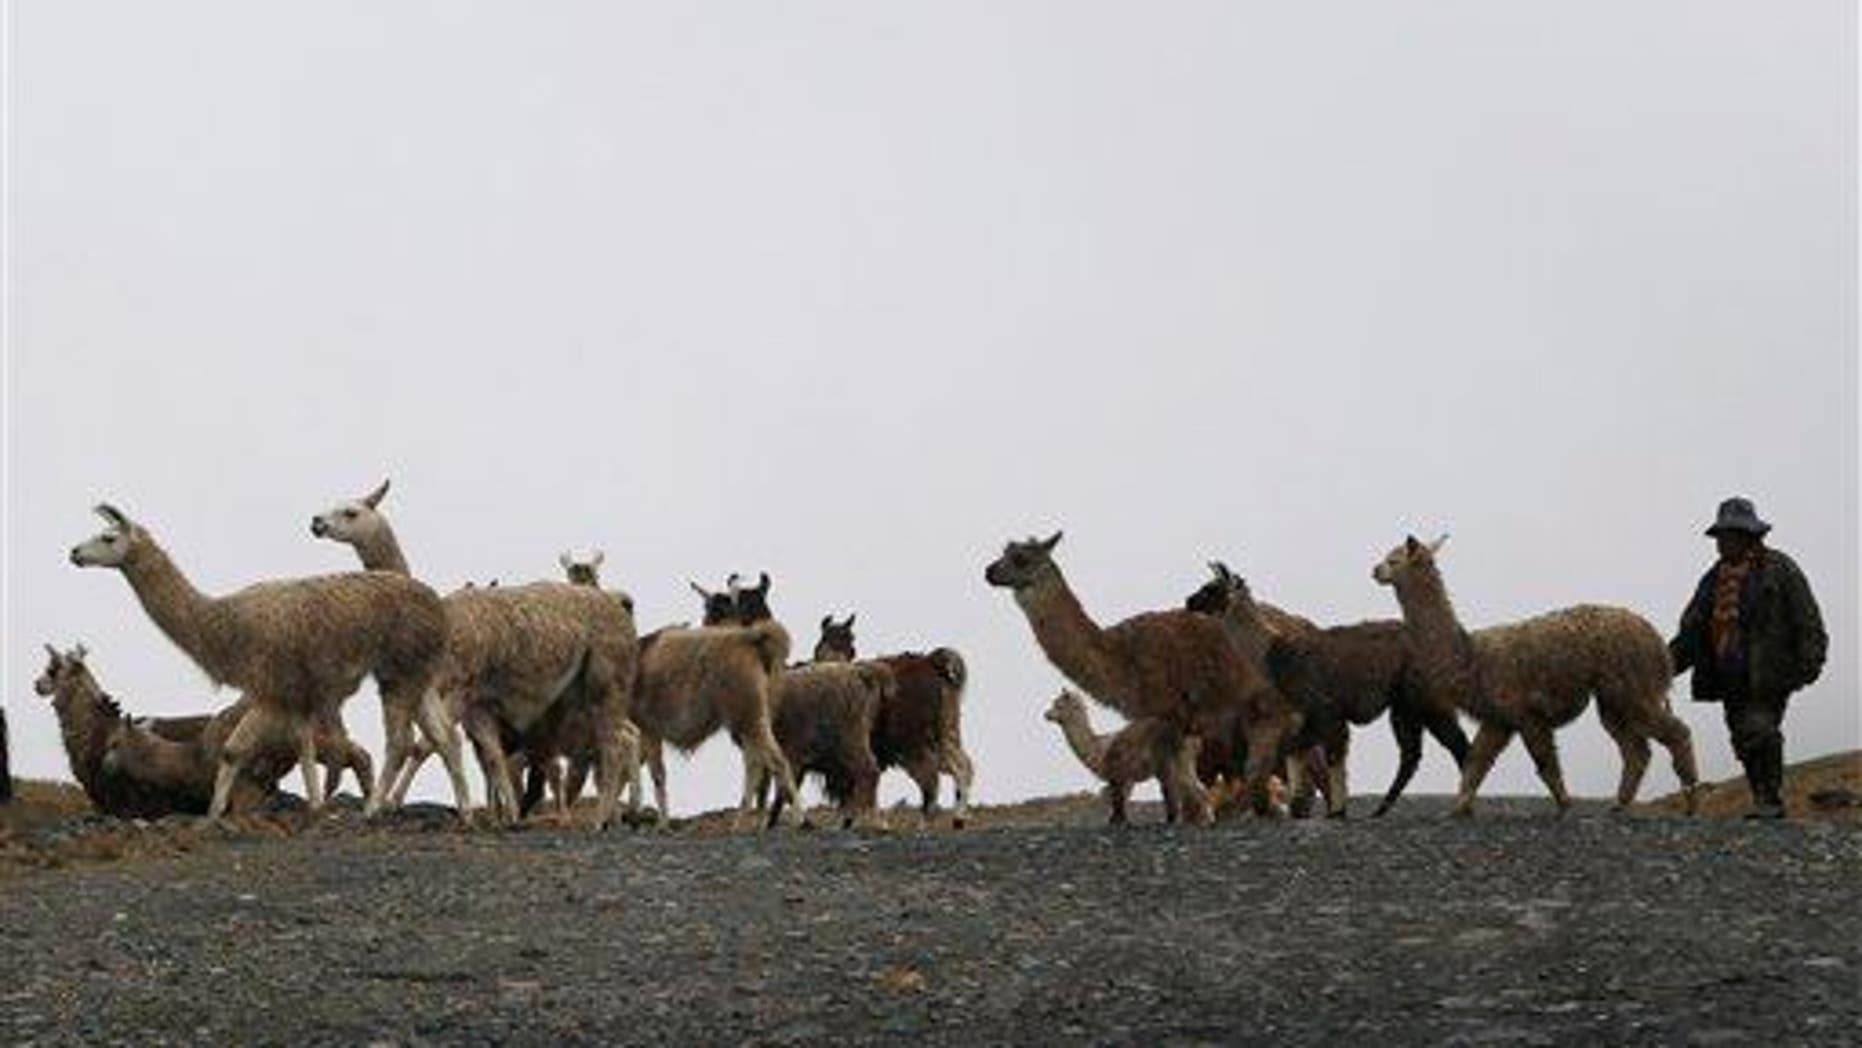 At least 42 children, 76 llamas killed in possible offering to the sea 600 years ago.